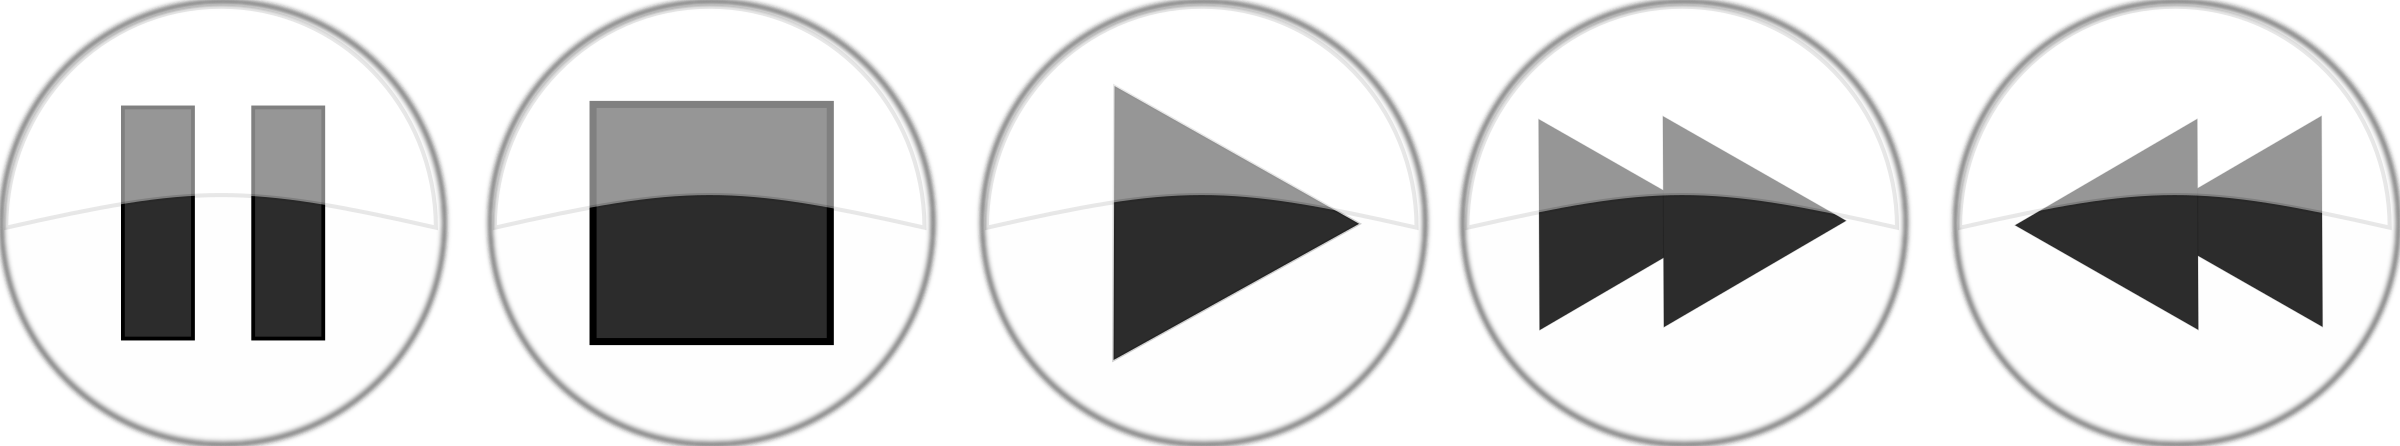 Glossy media player buttons by bugmenot